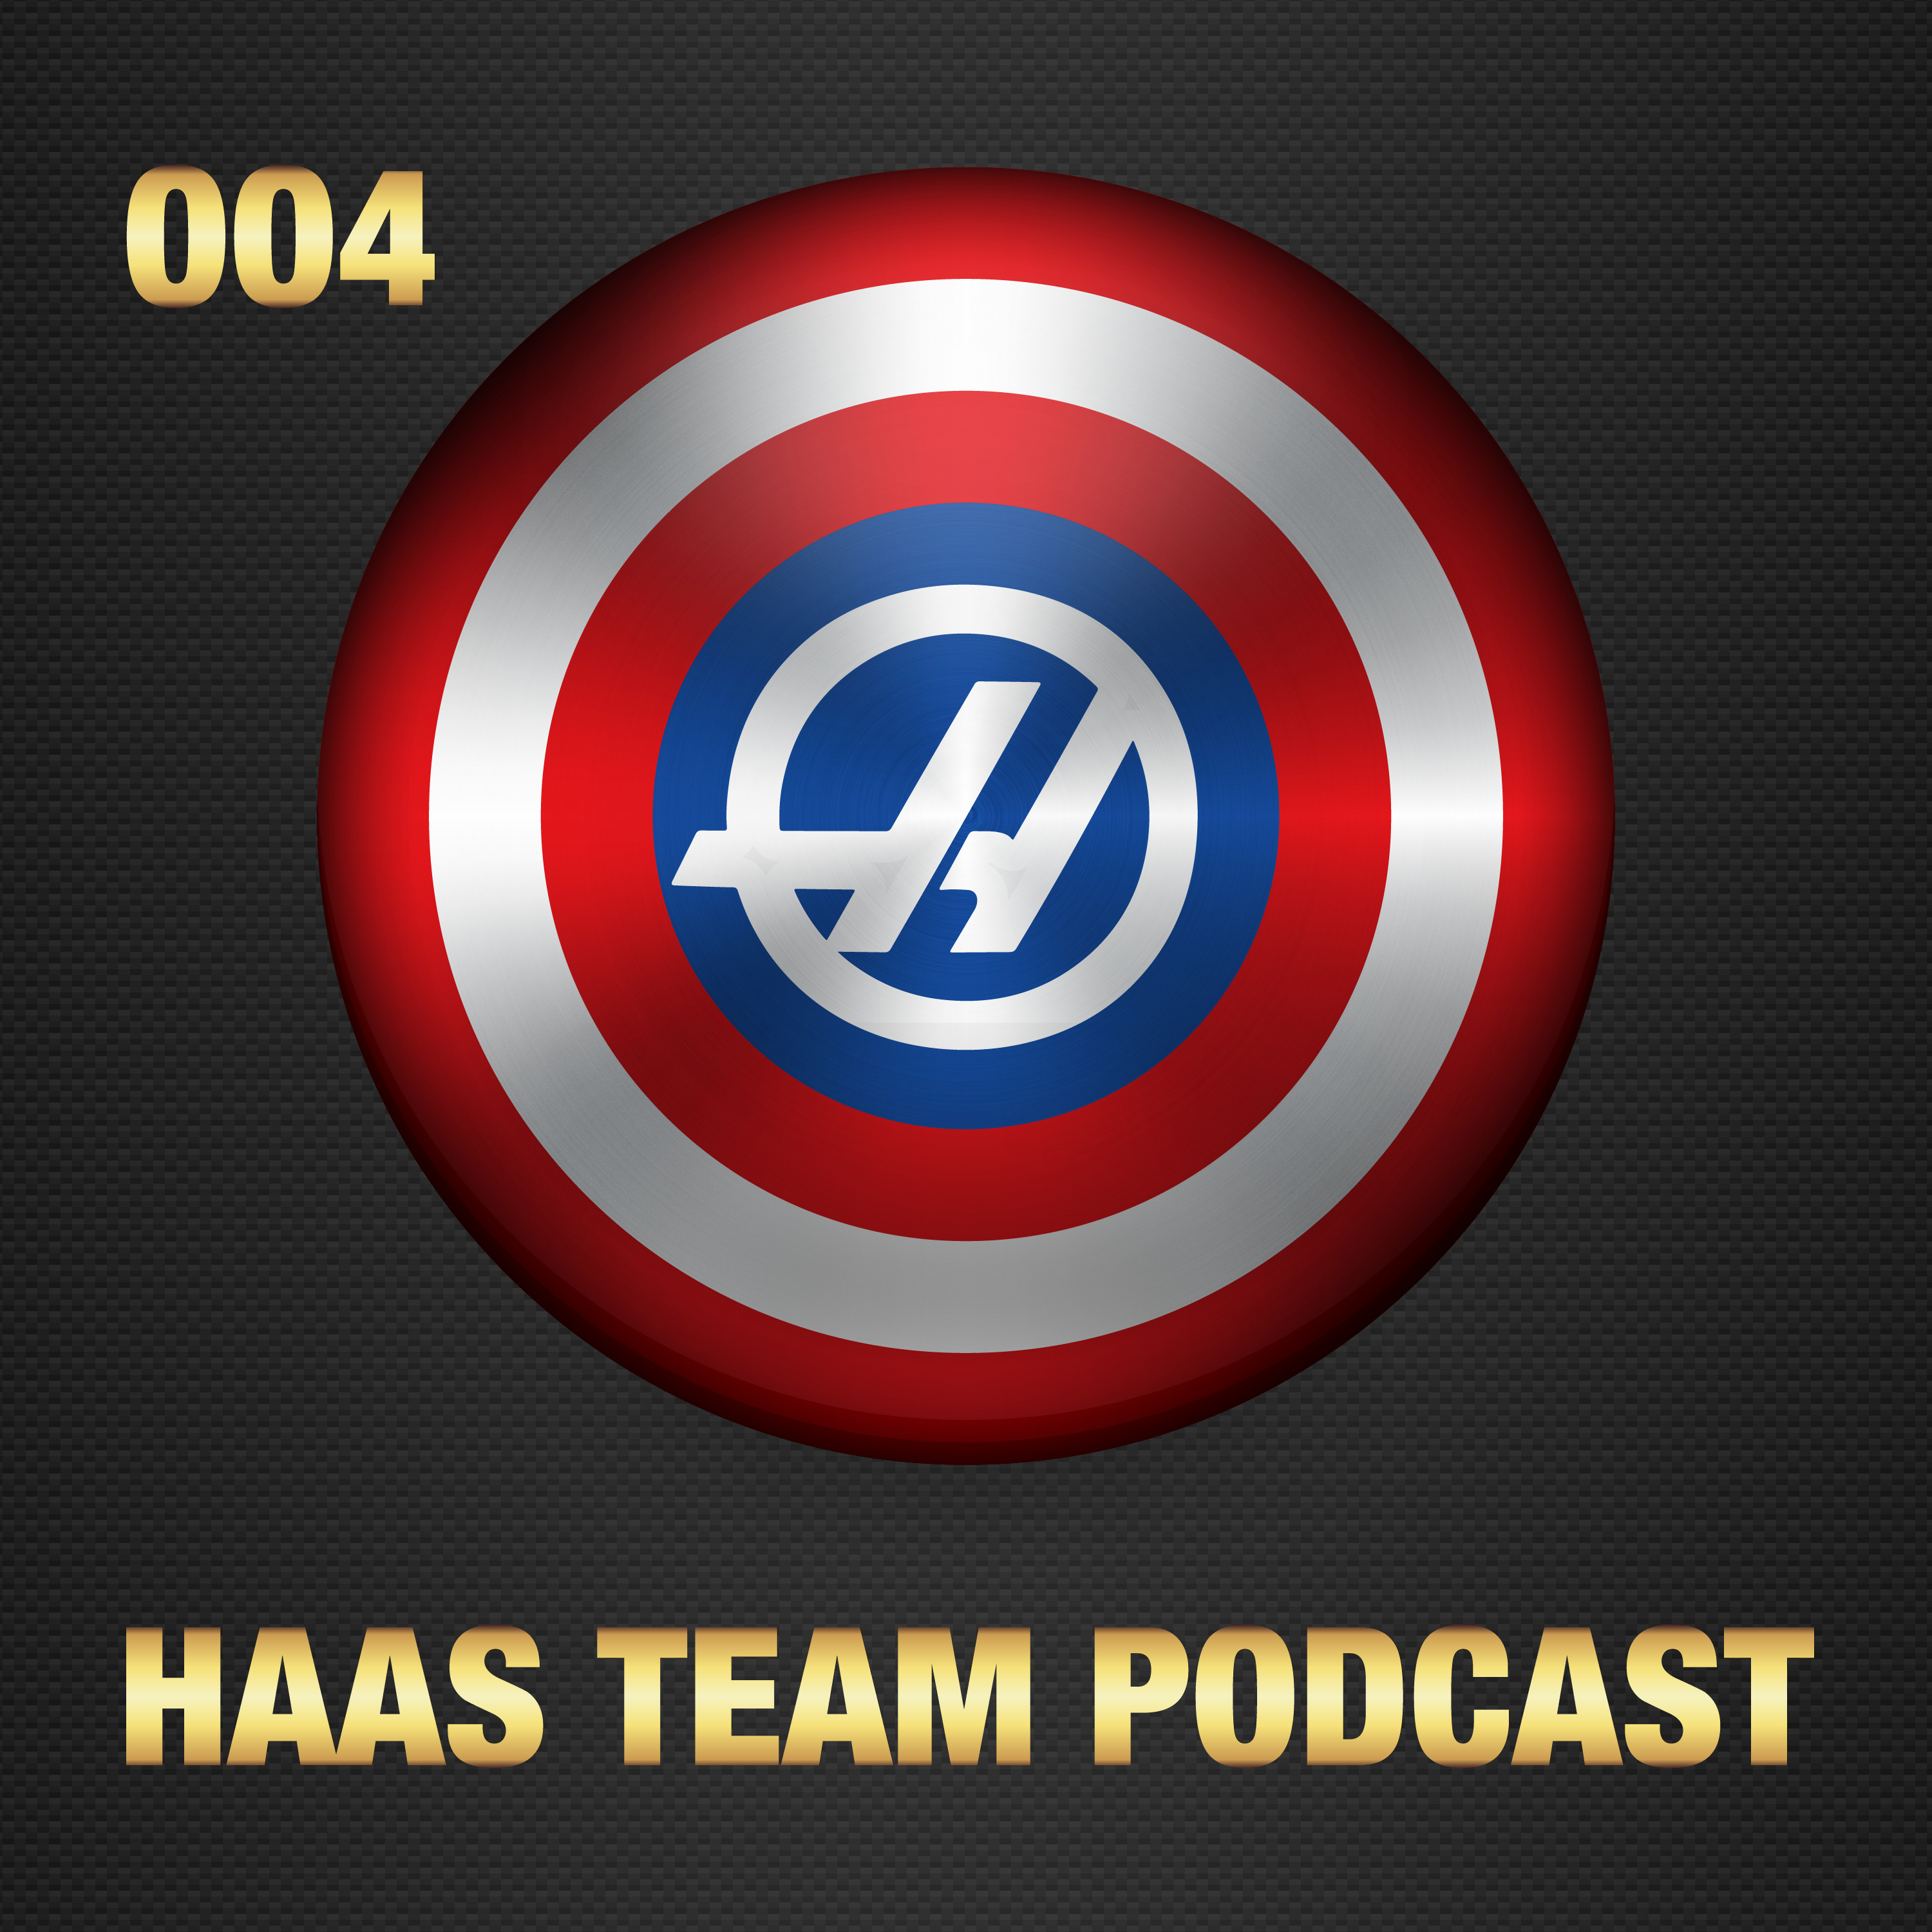 Haas Team Podcast, Episode 004 - Bahrain Grand Prix Analysis